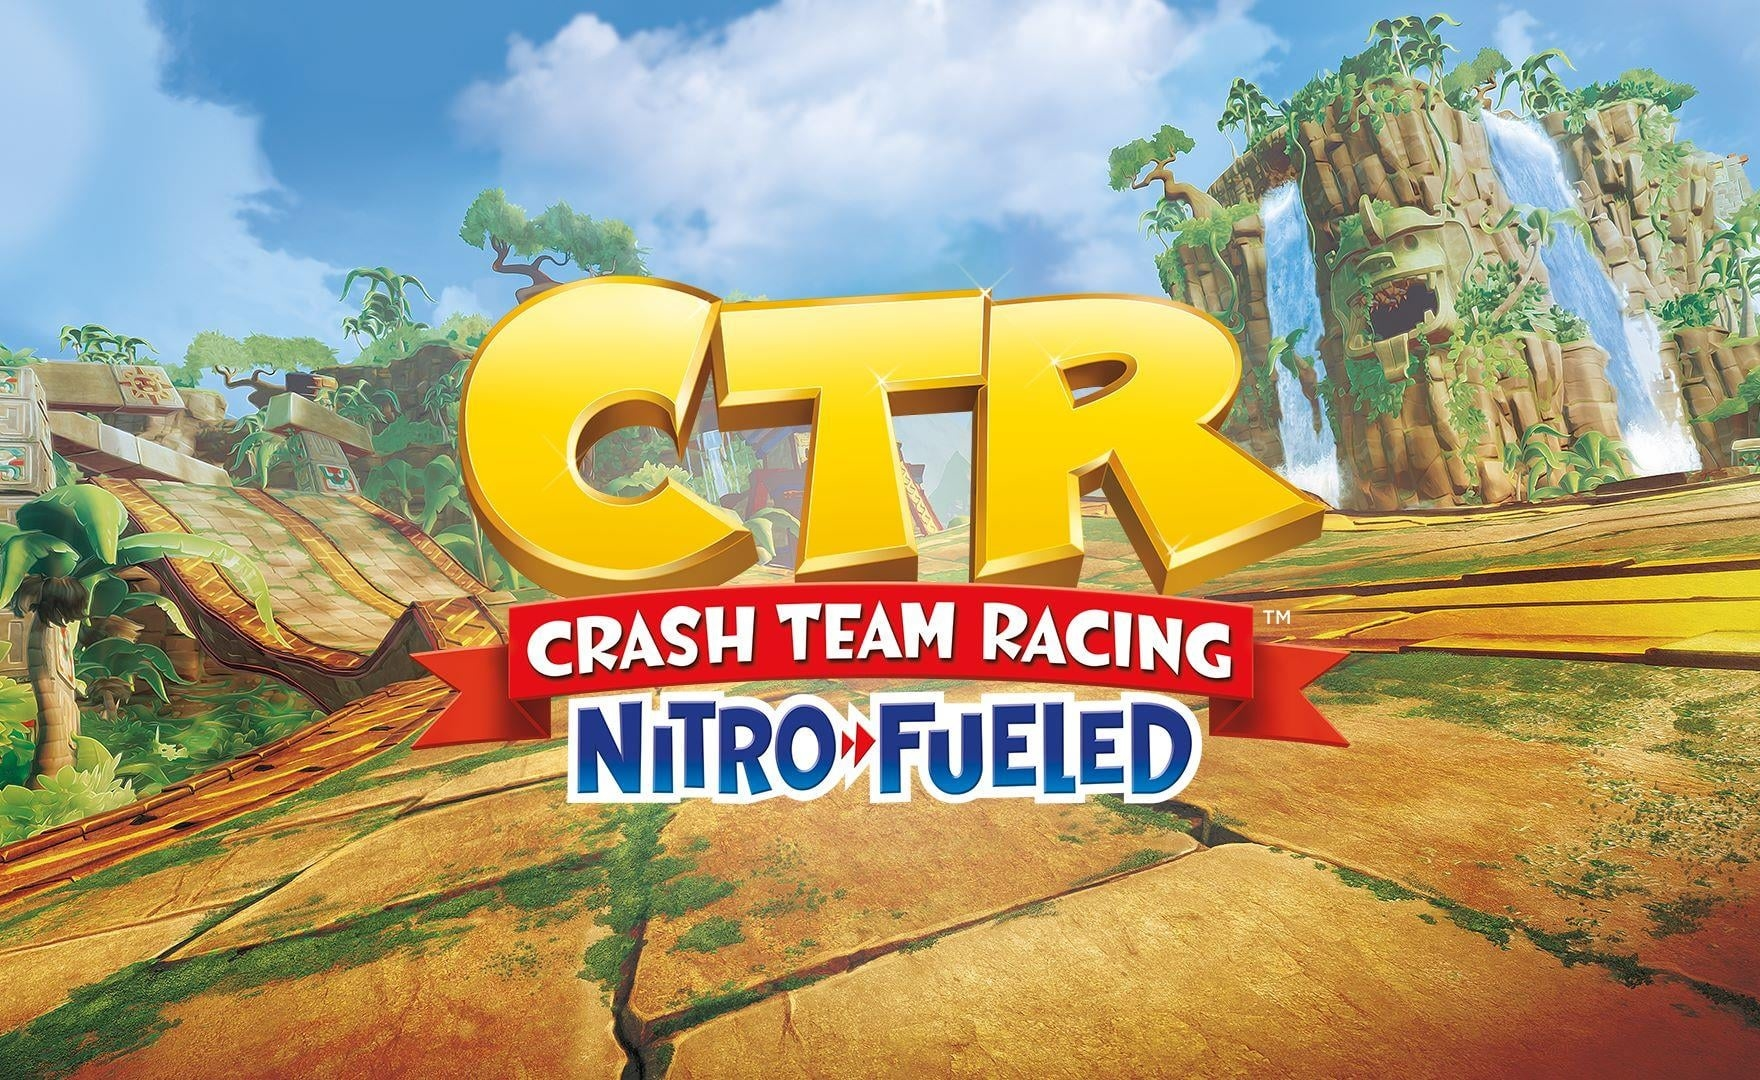 Crash Team Racing Nitro-Fueled: trailer per la personalizzazione e l'elenco dei personaggi